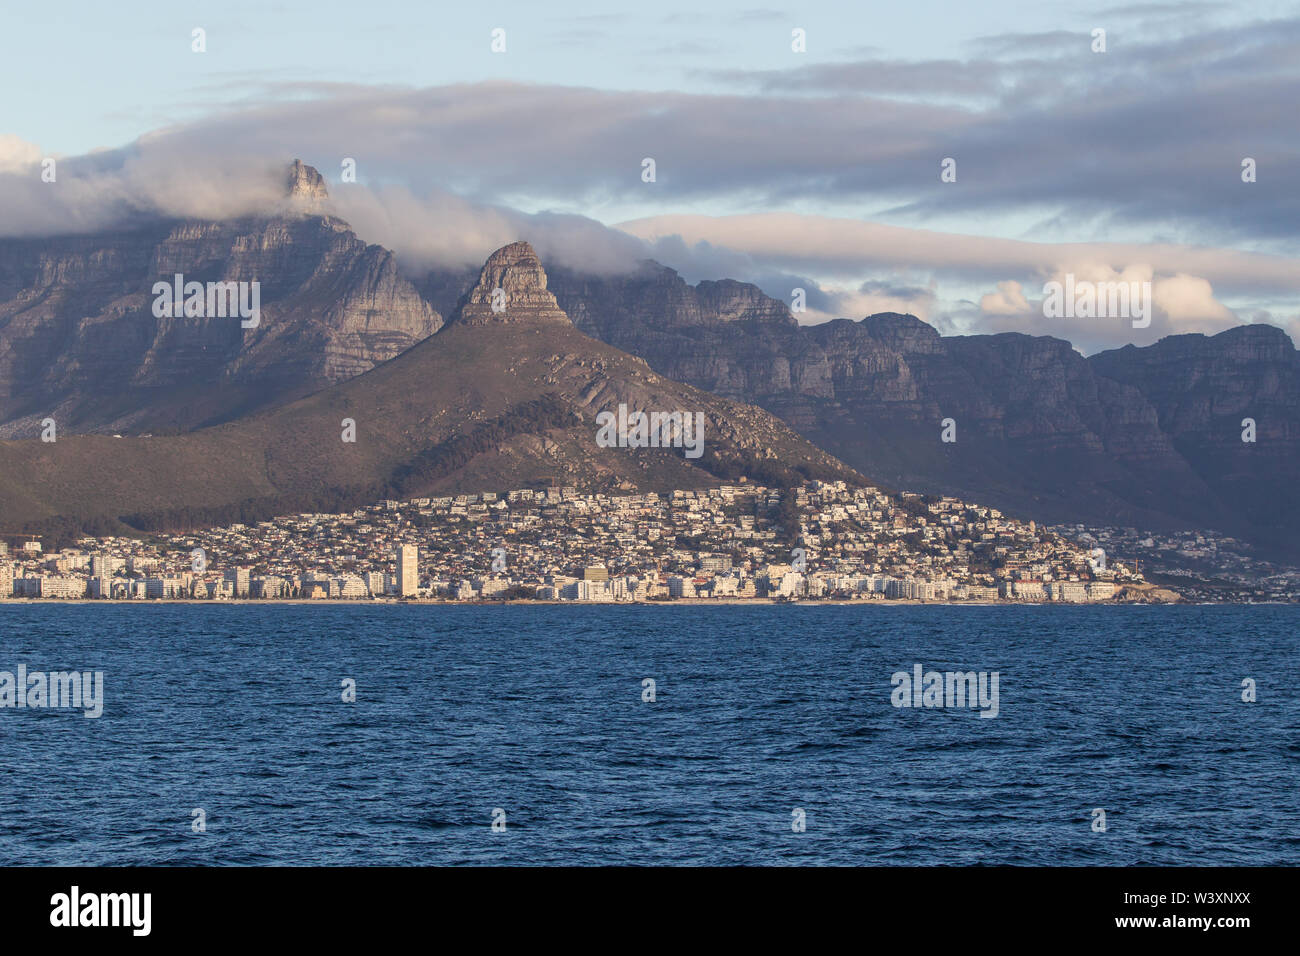 Cape Town, Western Cape, South Africa is among the most beautiful cities in the world, seen from Table Bay framed by Table Mountain and Lion's Head - Stock Image